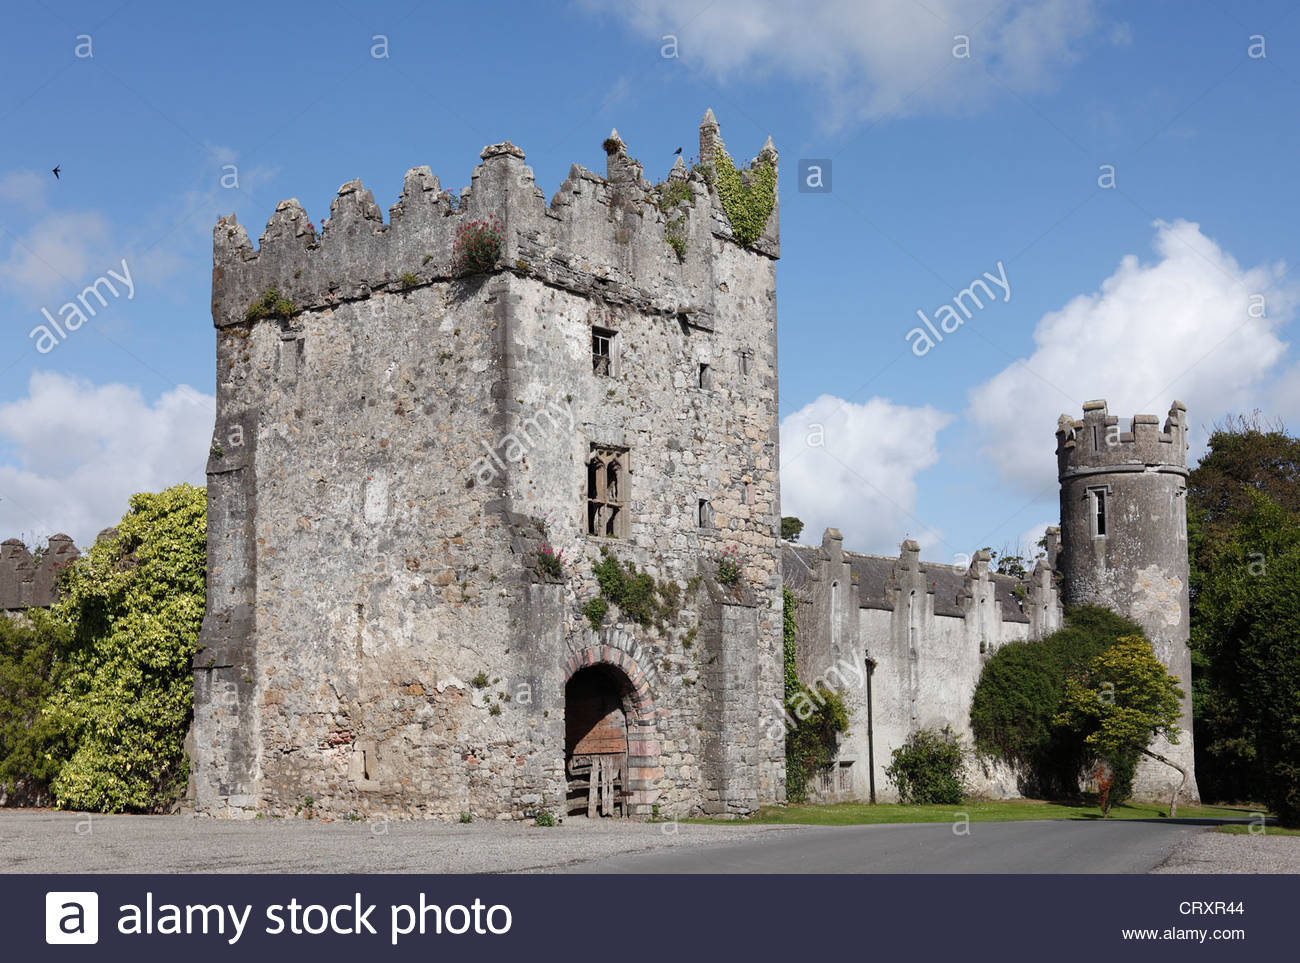 Ireland, Leinster, County Fingal, View of Corr castle - Stock Image